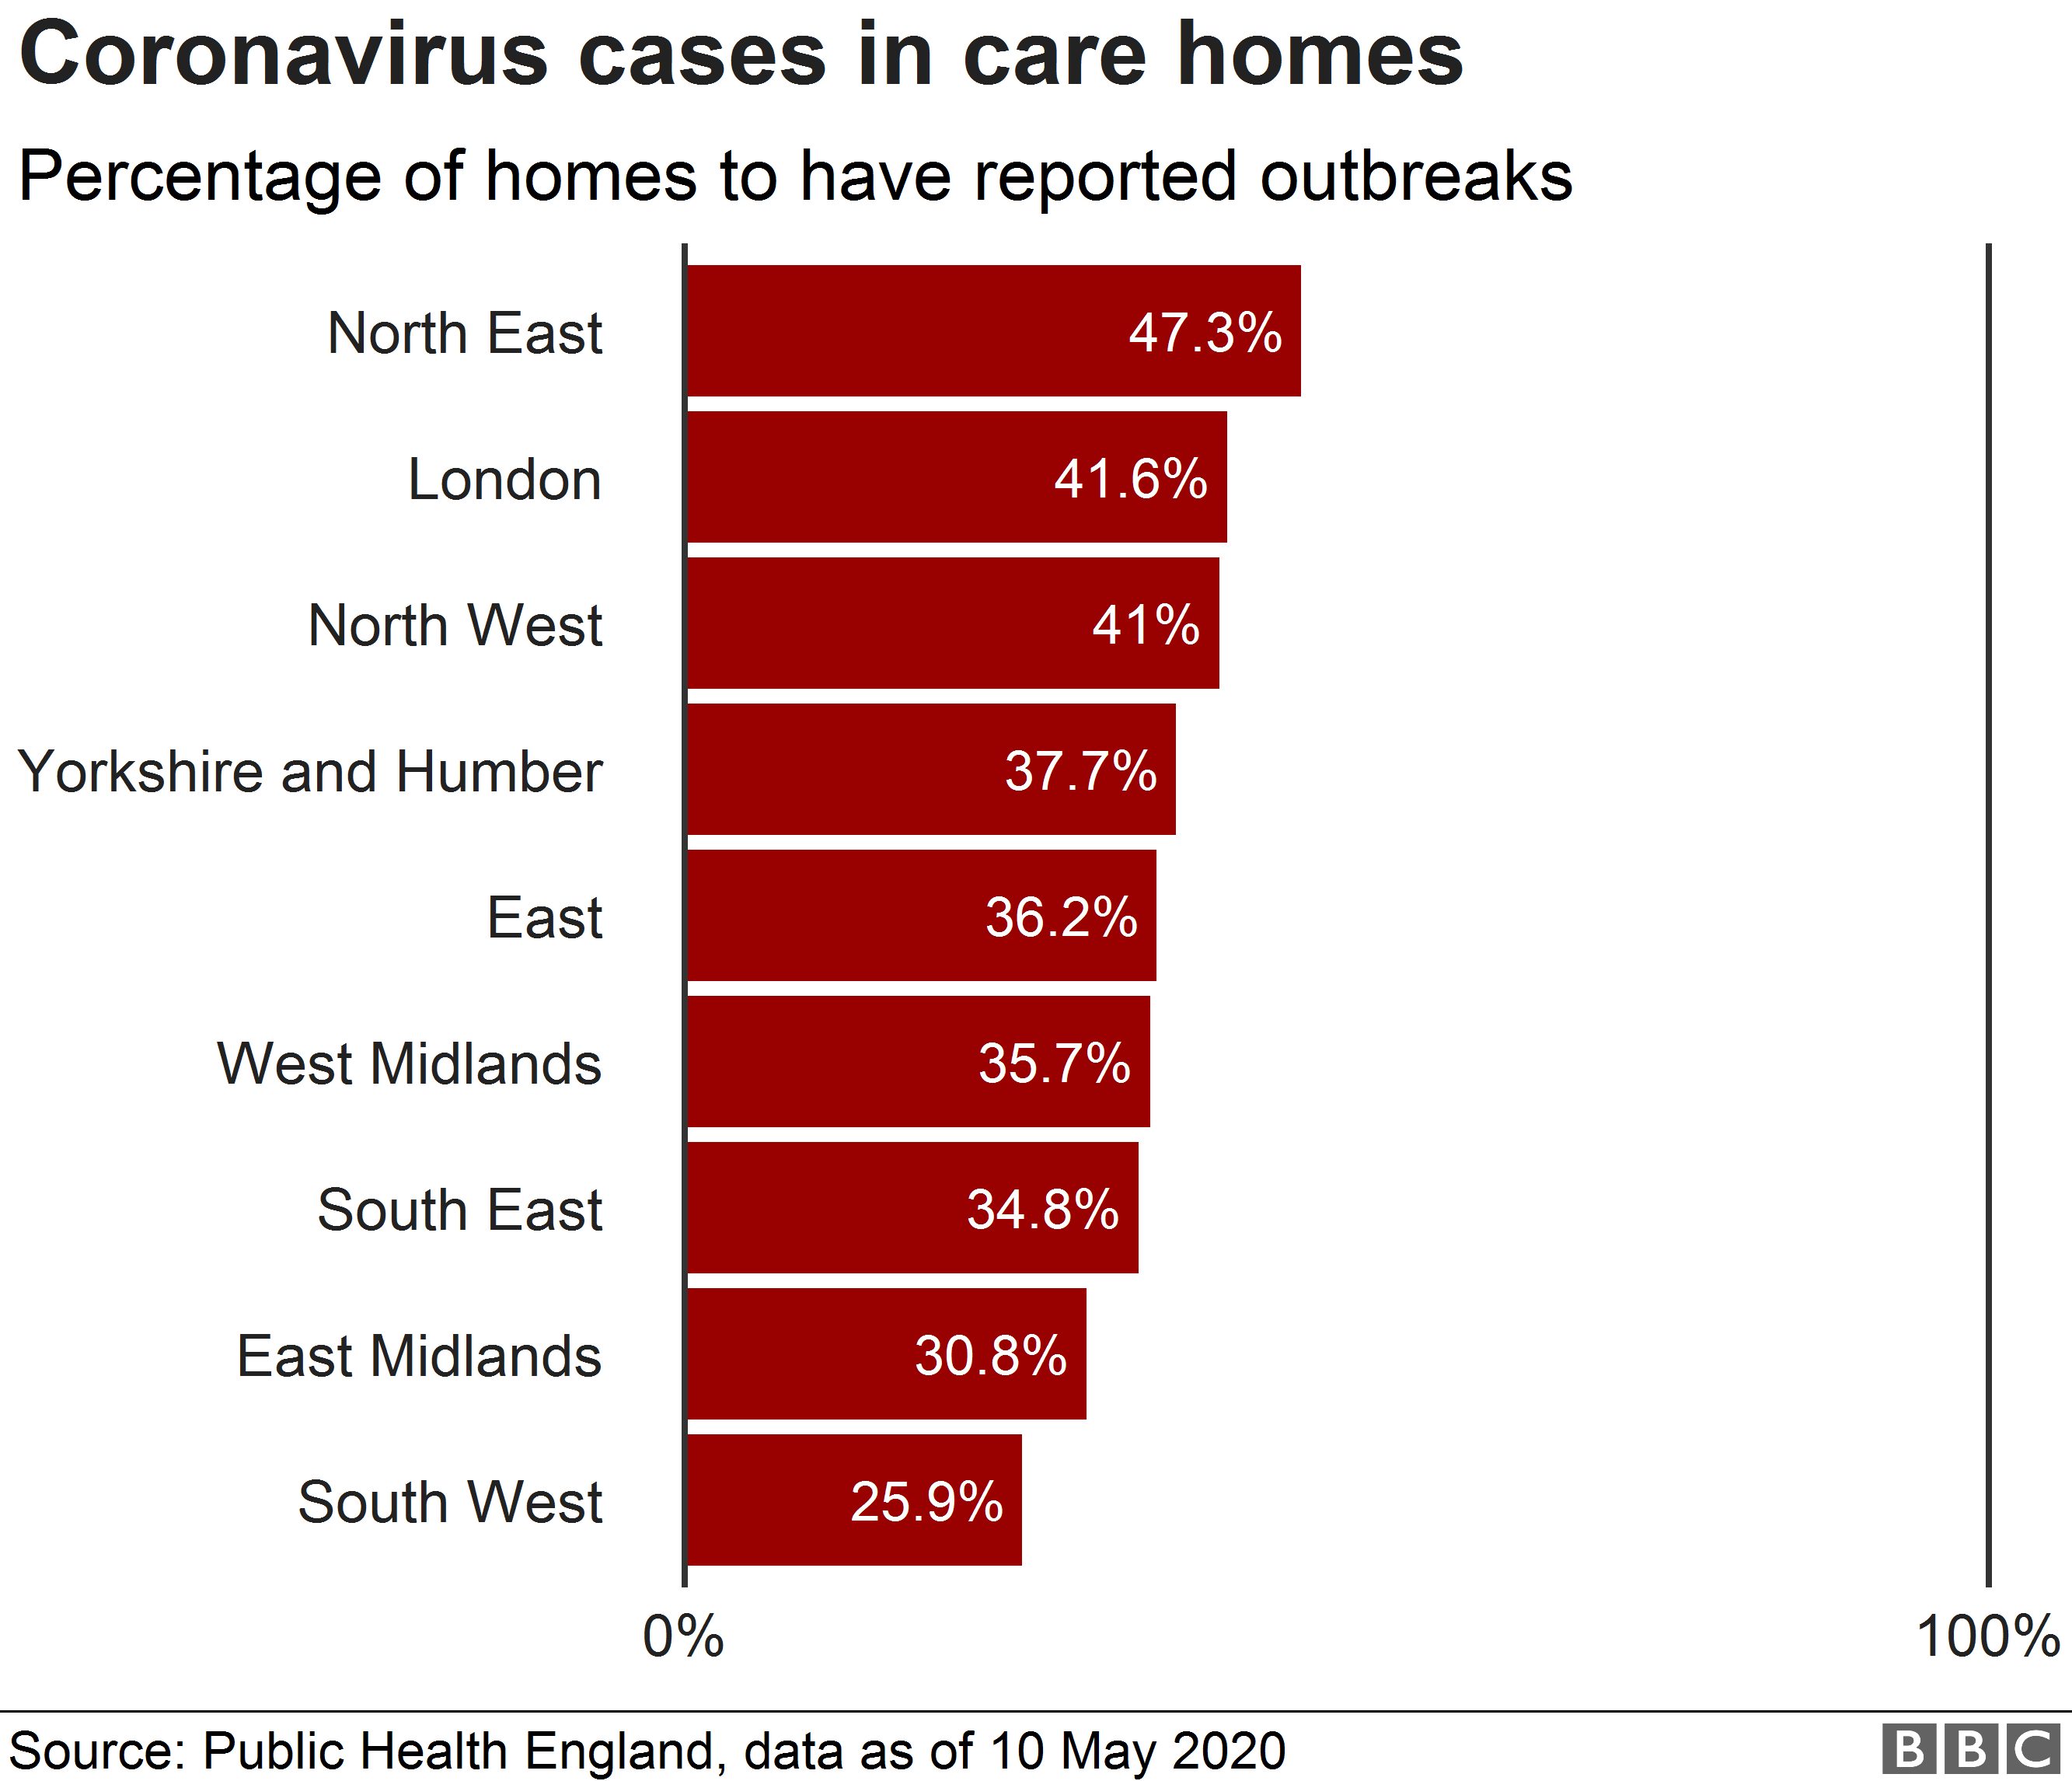 Chart showing percentage of care homes by region to have reported outbreaks